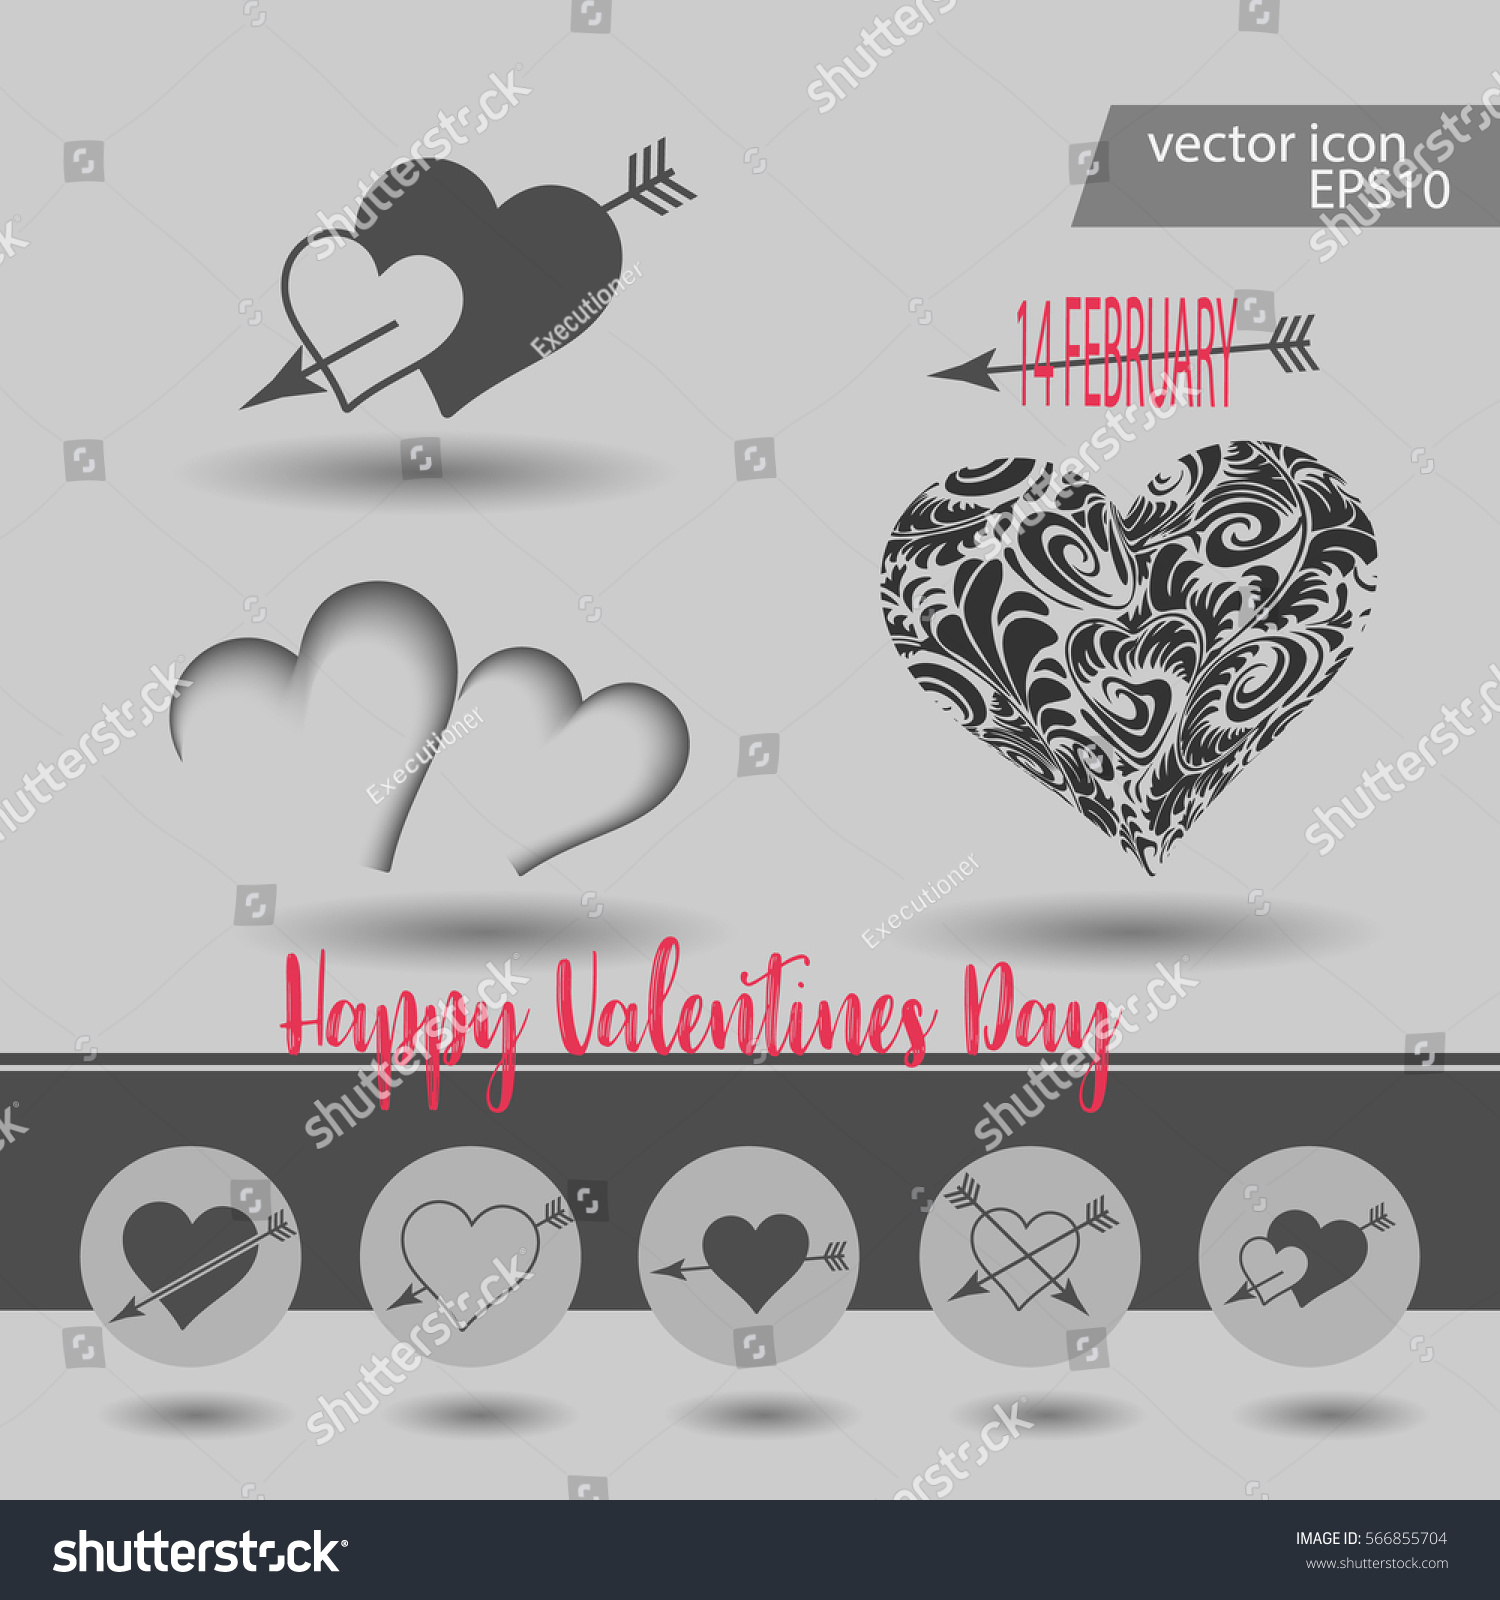 dating handle valentines official